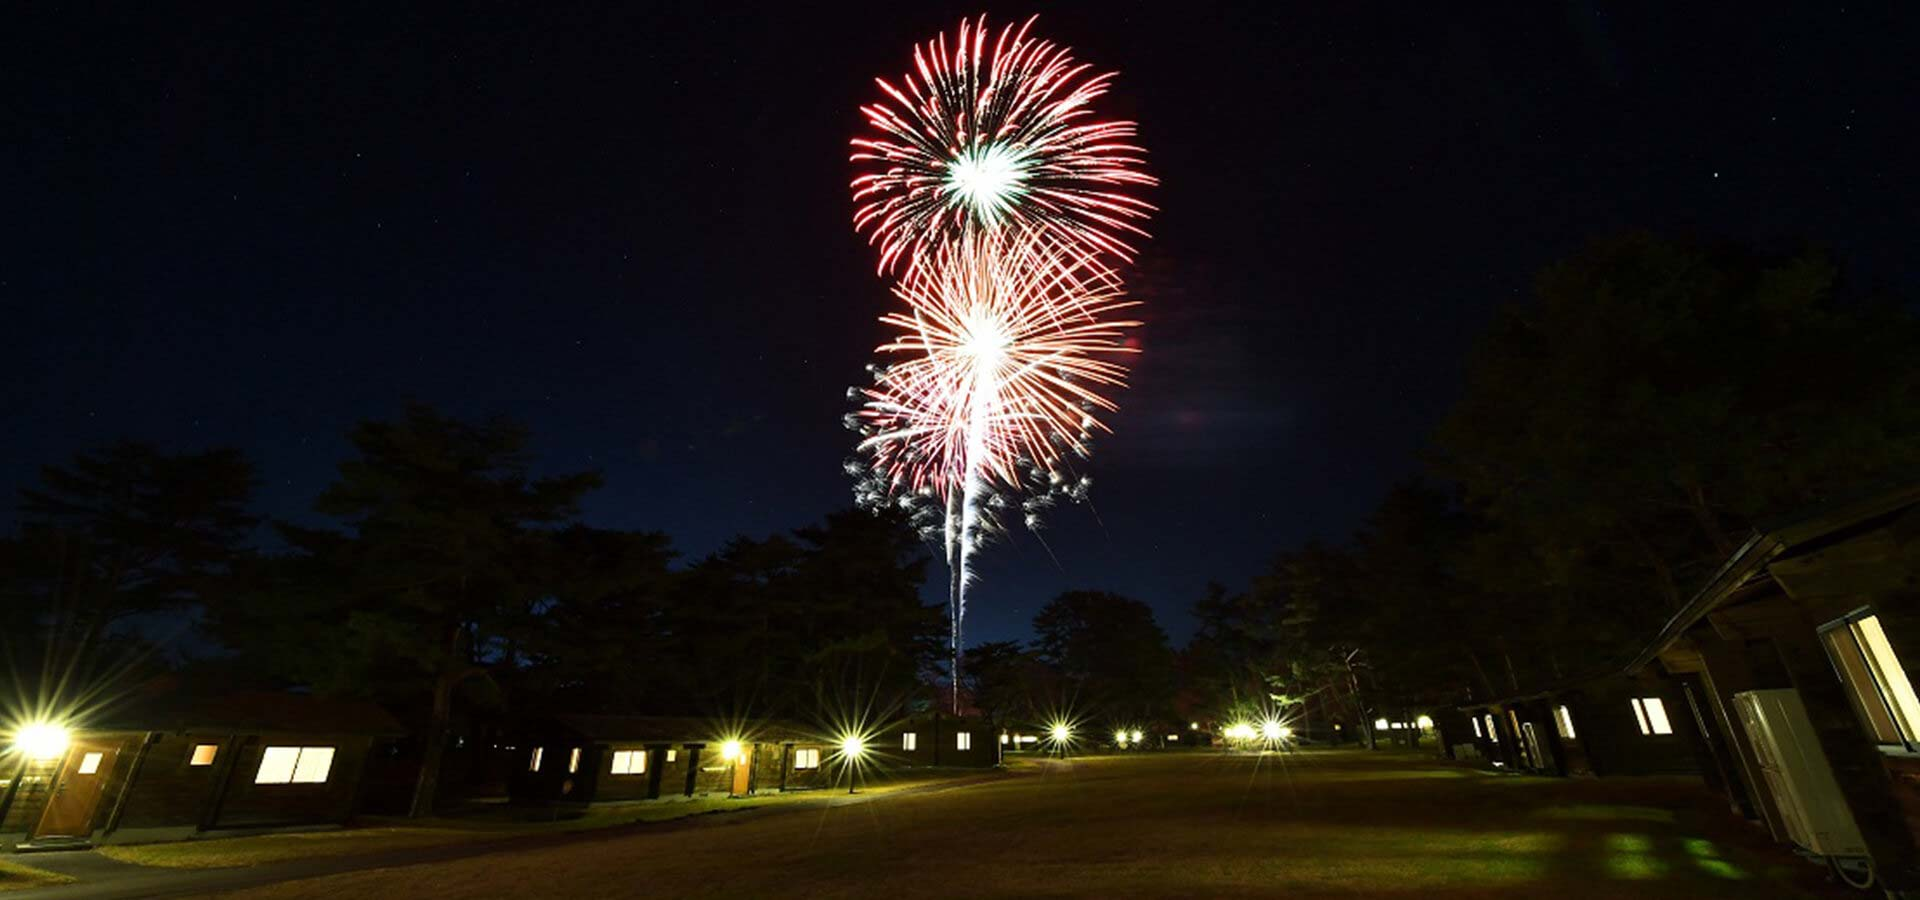 Fireworks show will shoot off on site